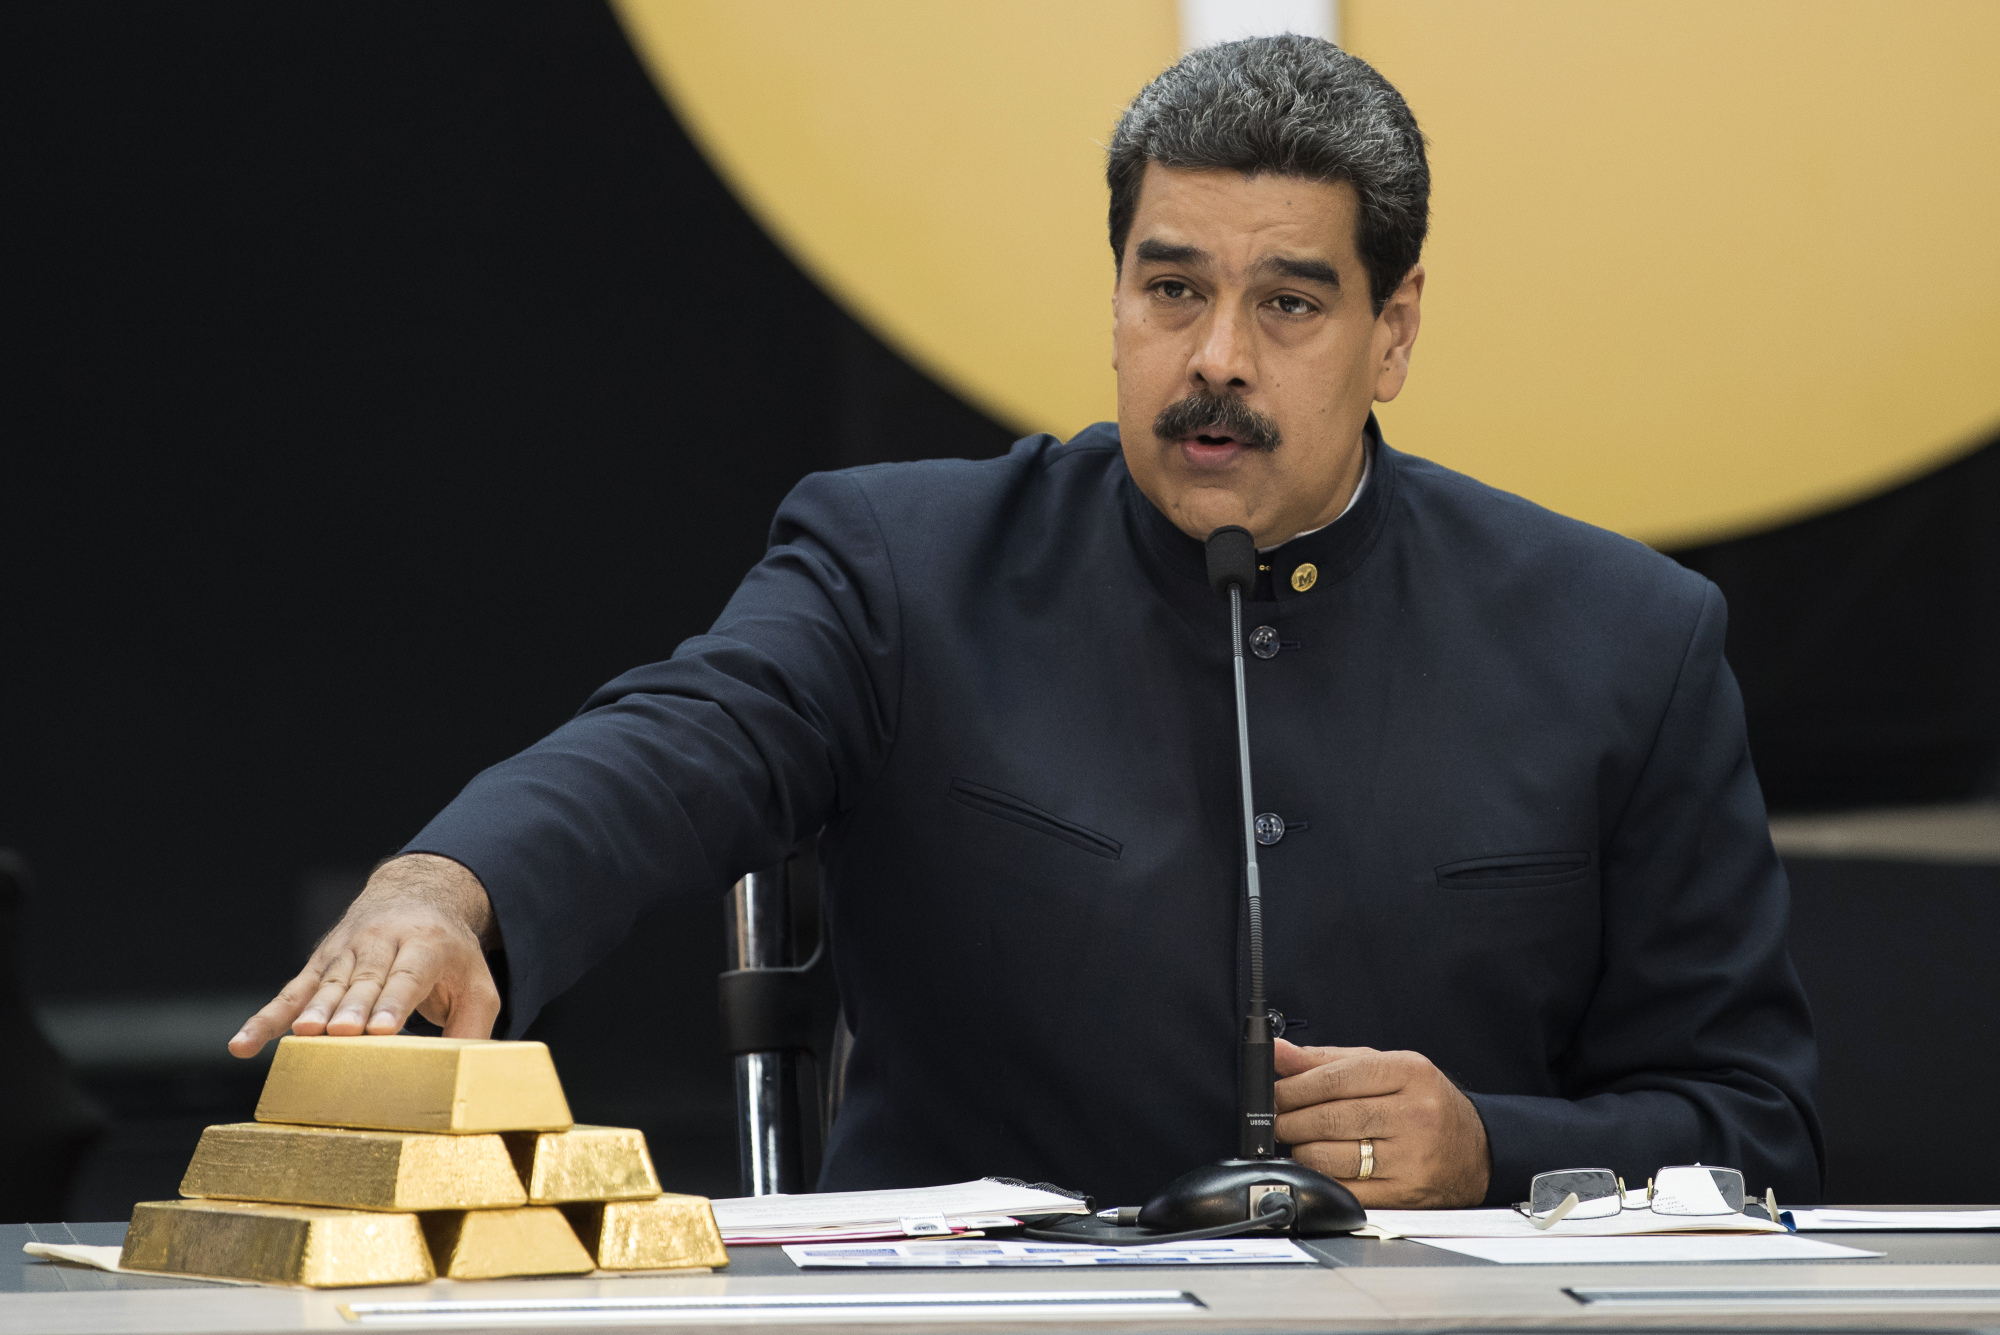 Maduro speaks as he touches a stack of 12 Kilogram gold ingots in Caracas.